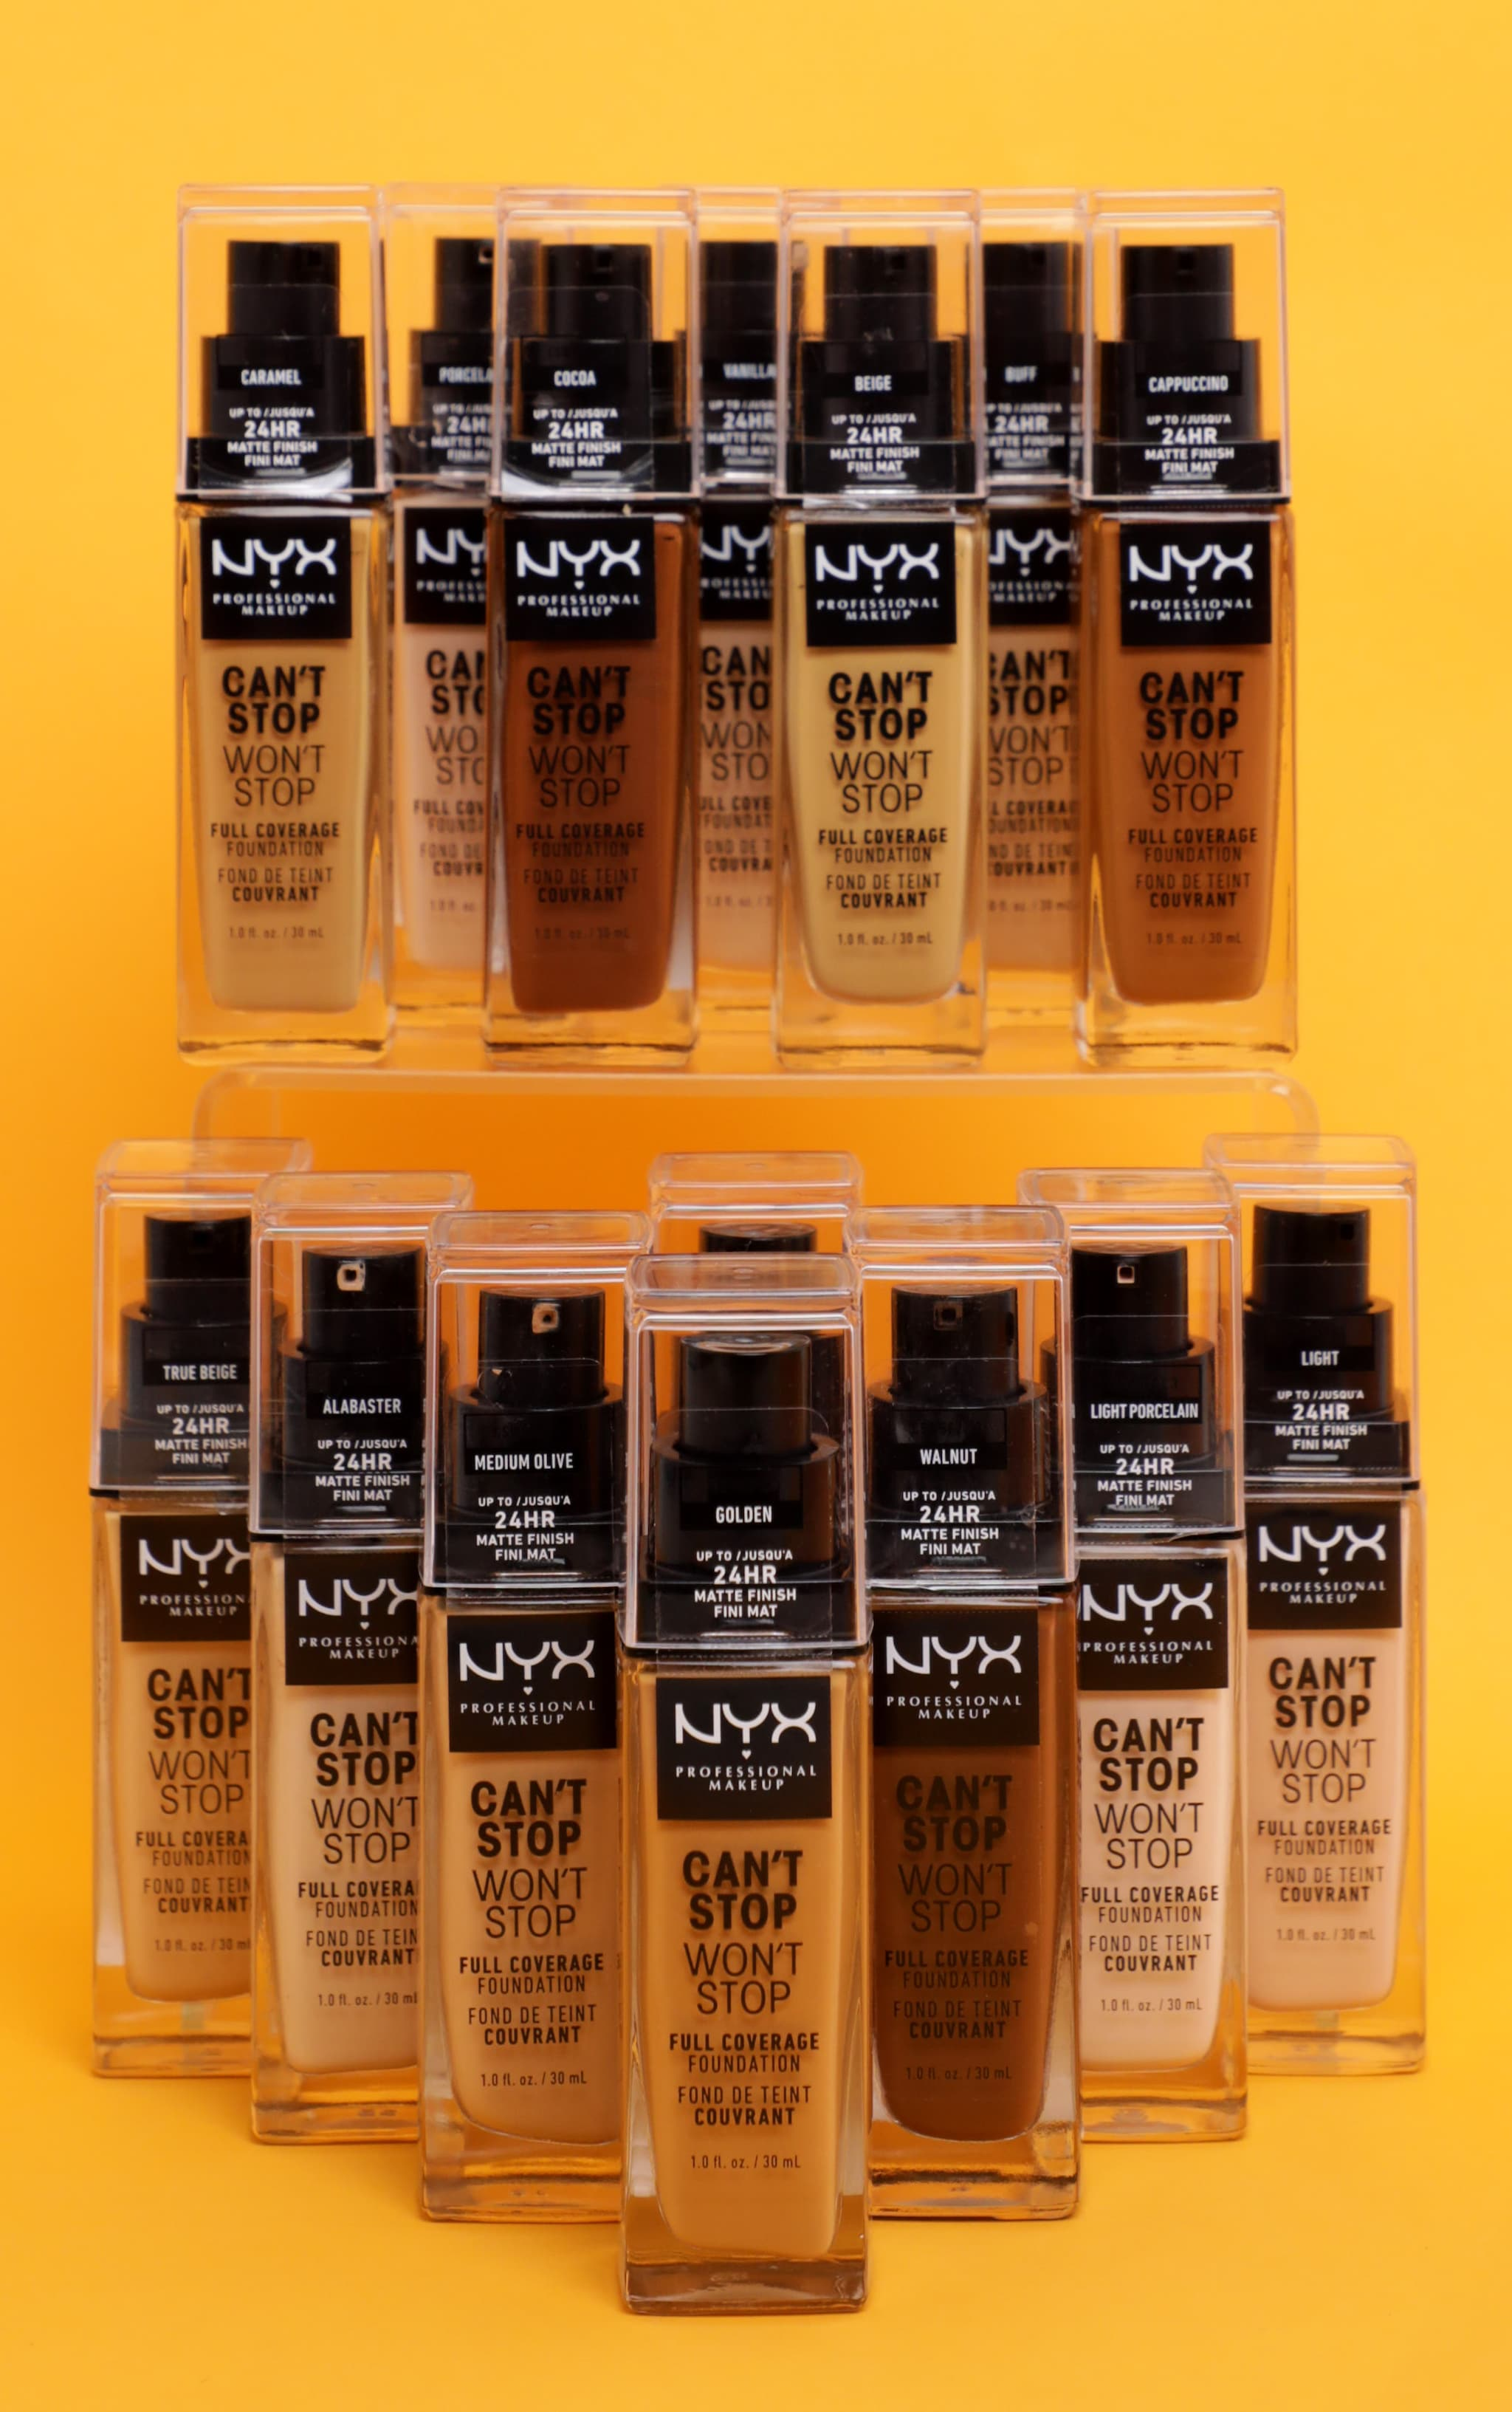 NYX PMU Can't Stop Won't Stop Full Coverage Foundation Classic Tan 3